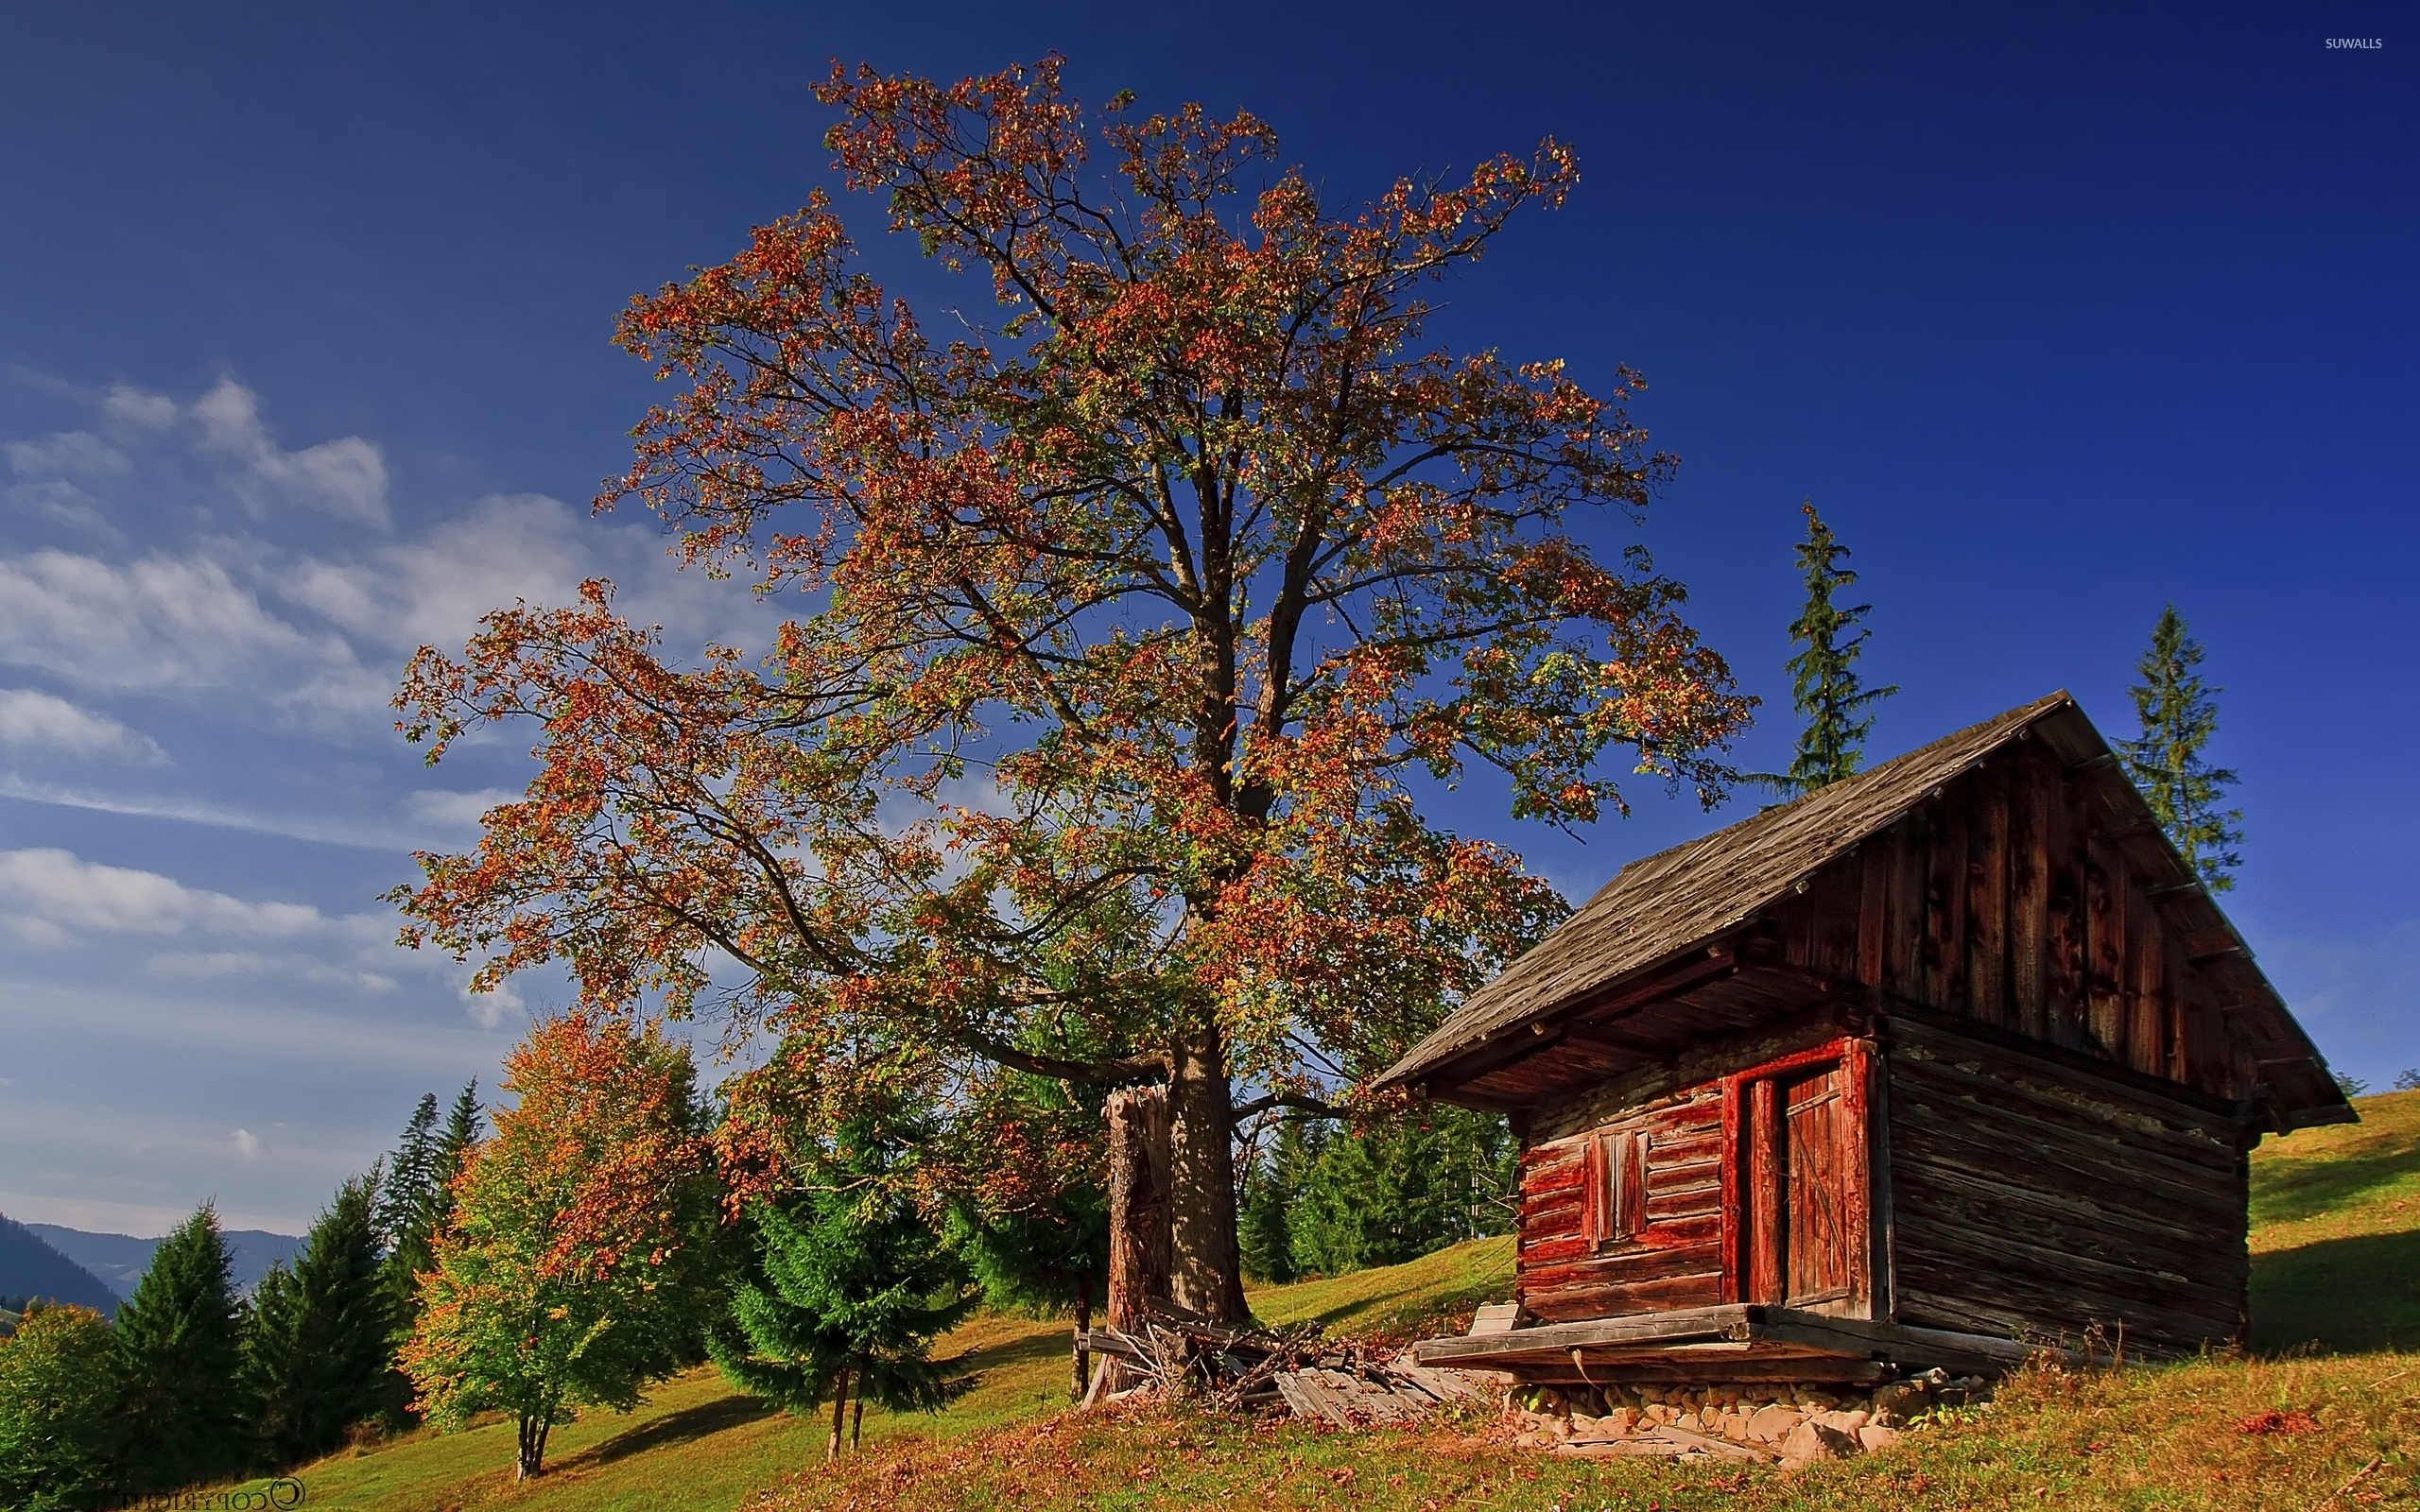 Old-Small-Wooden-House-Under-An-Autumn-Tree-51390-2560×1600-Wallpaper